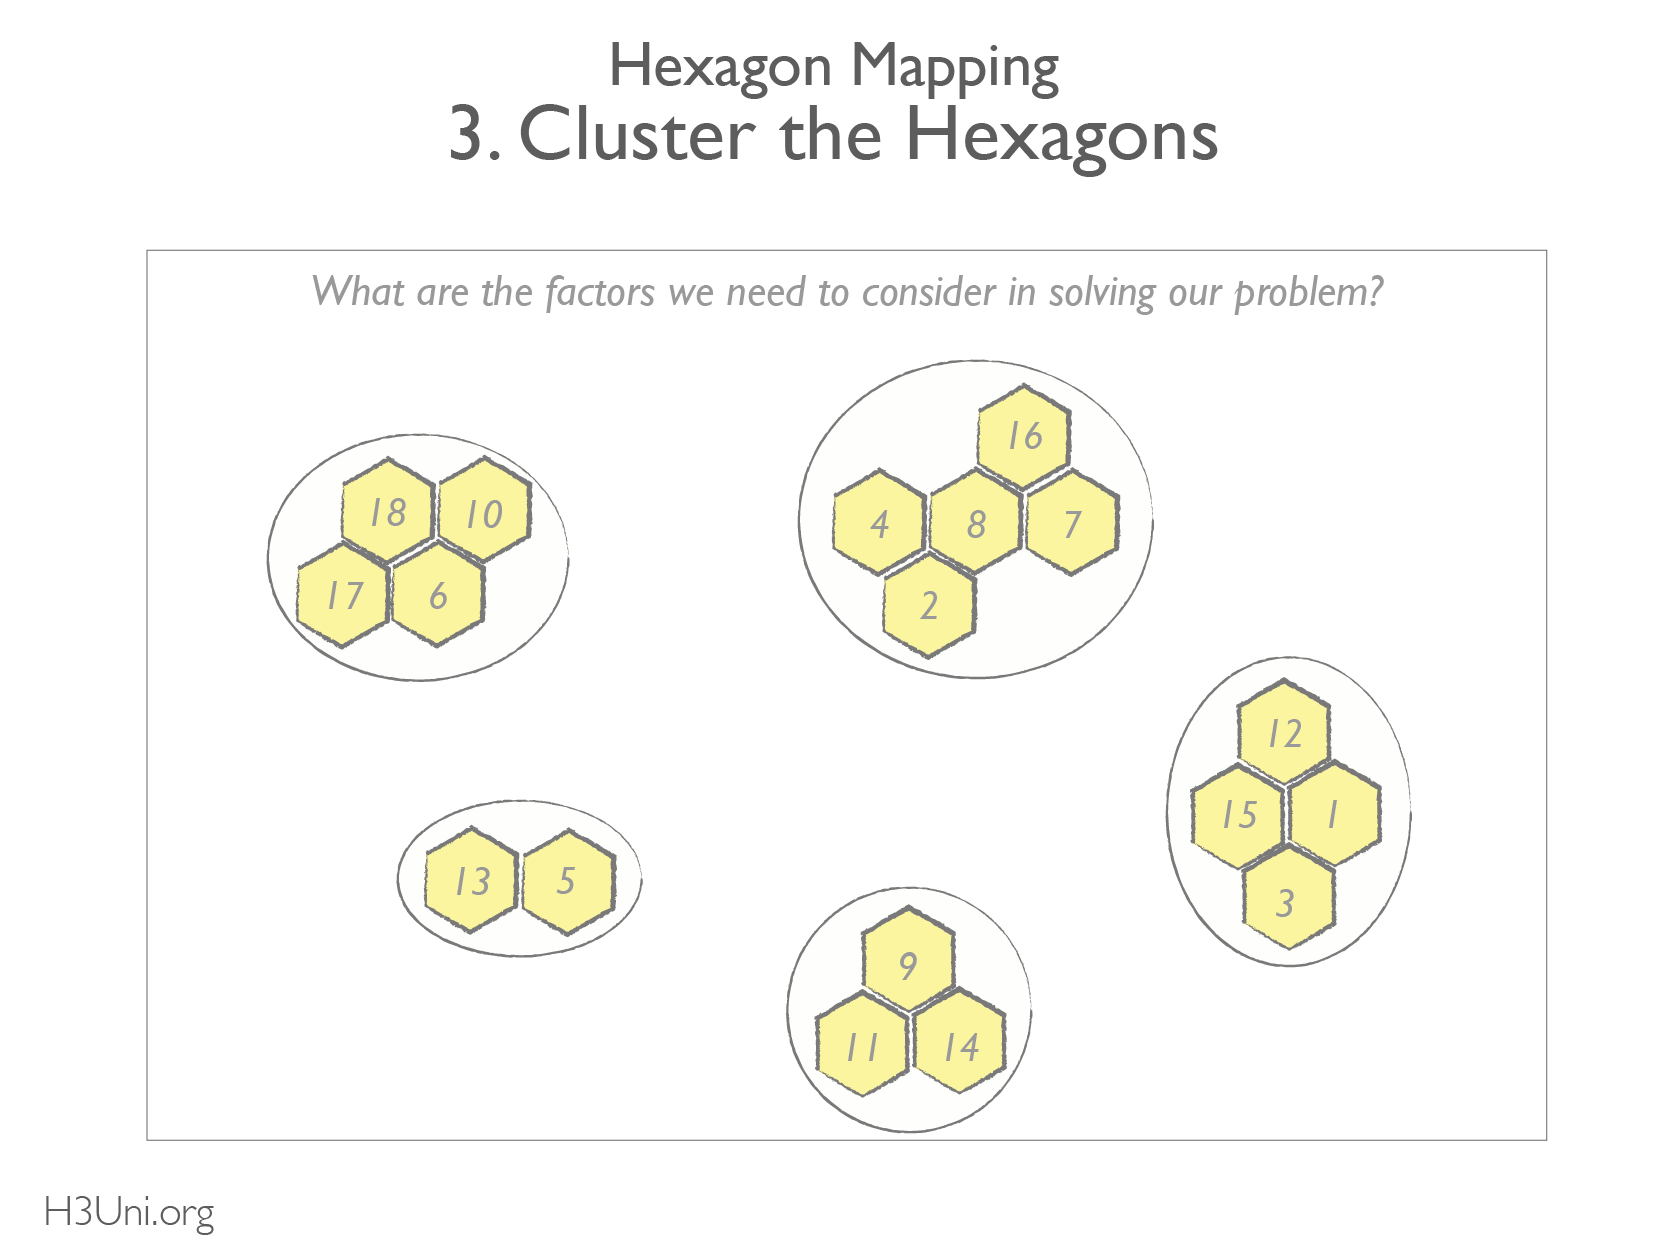 Cluster hexagons